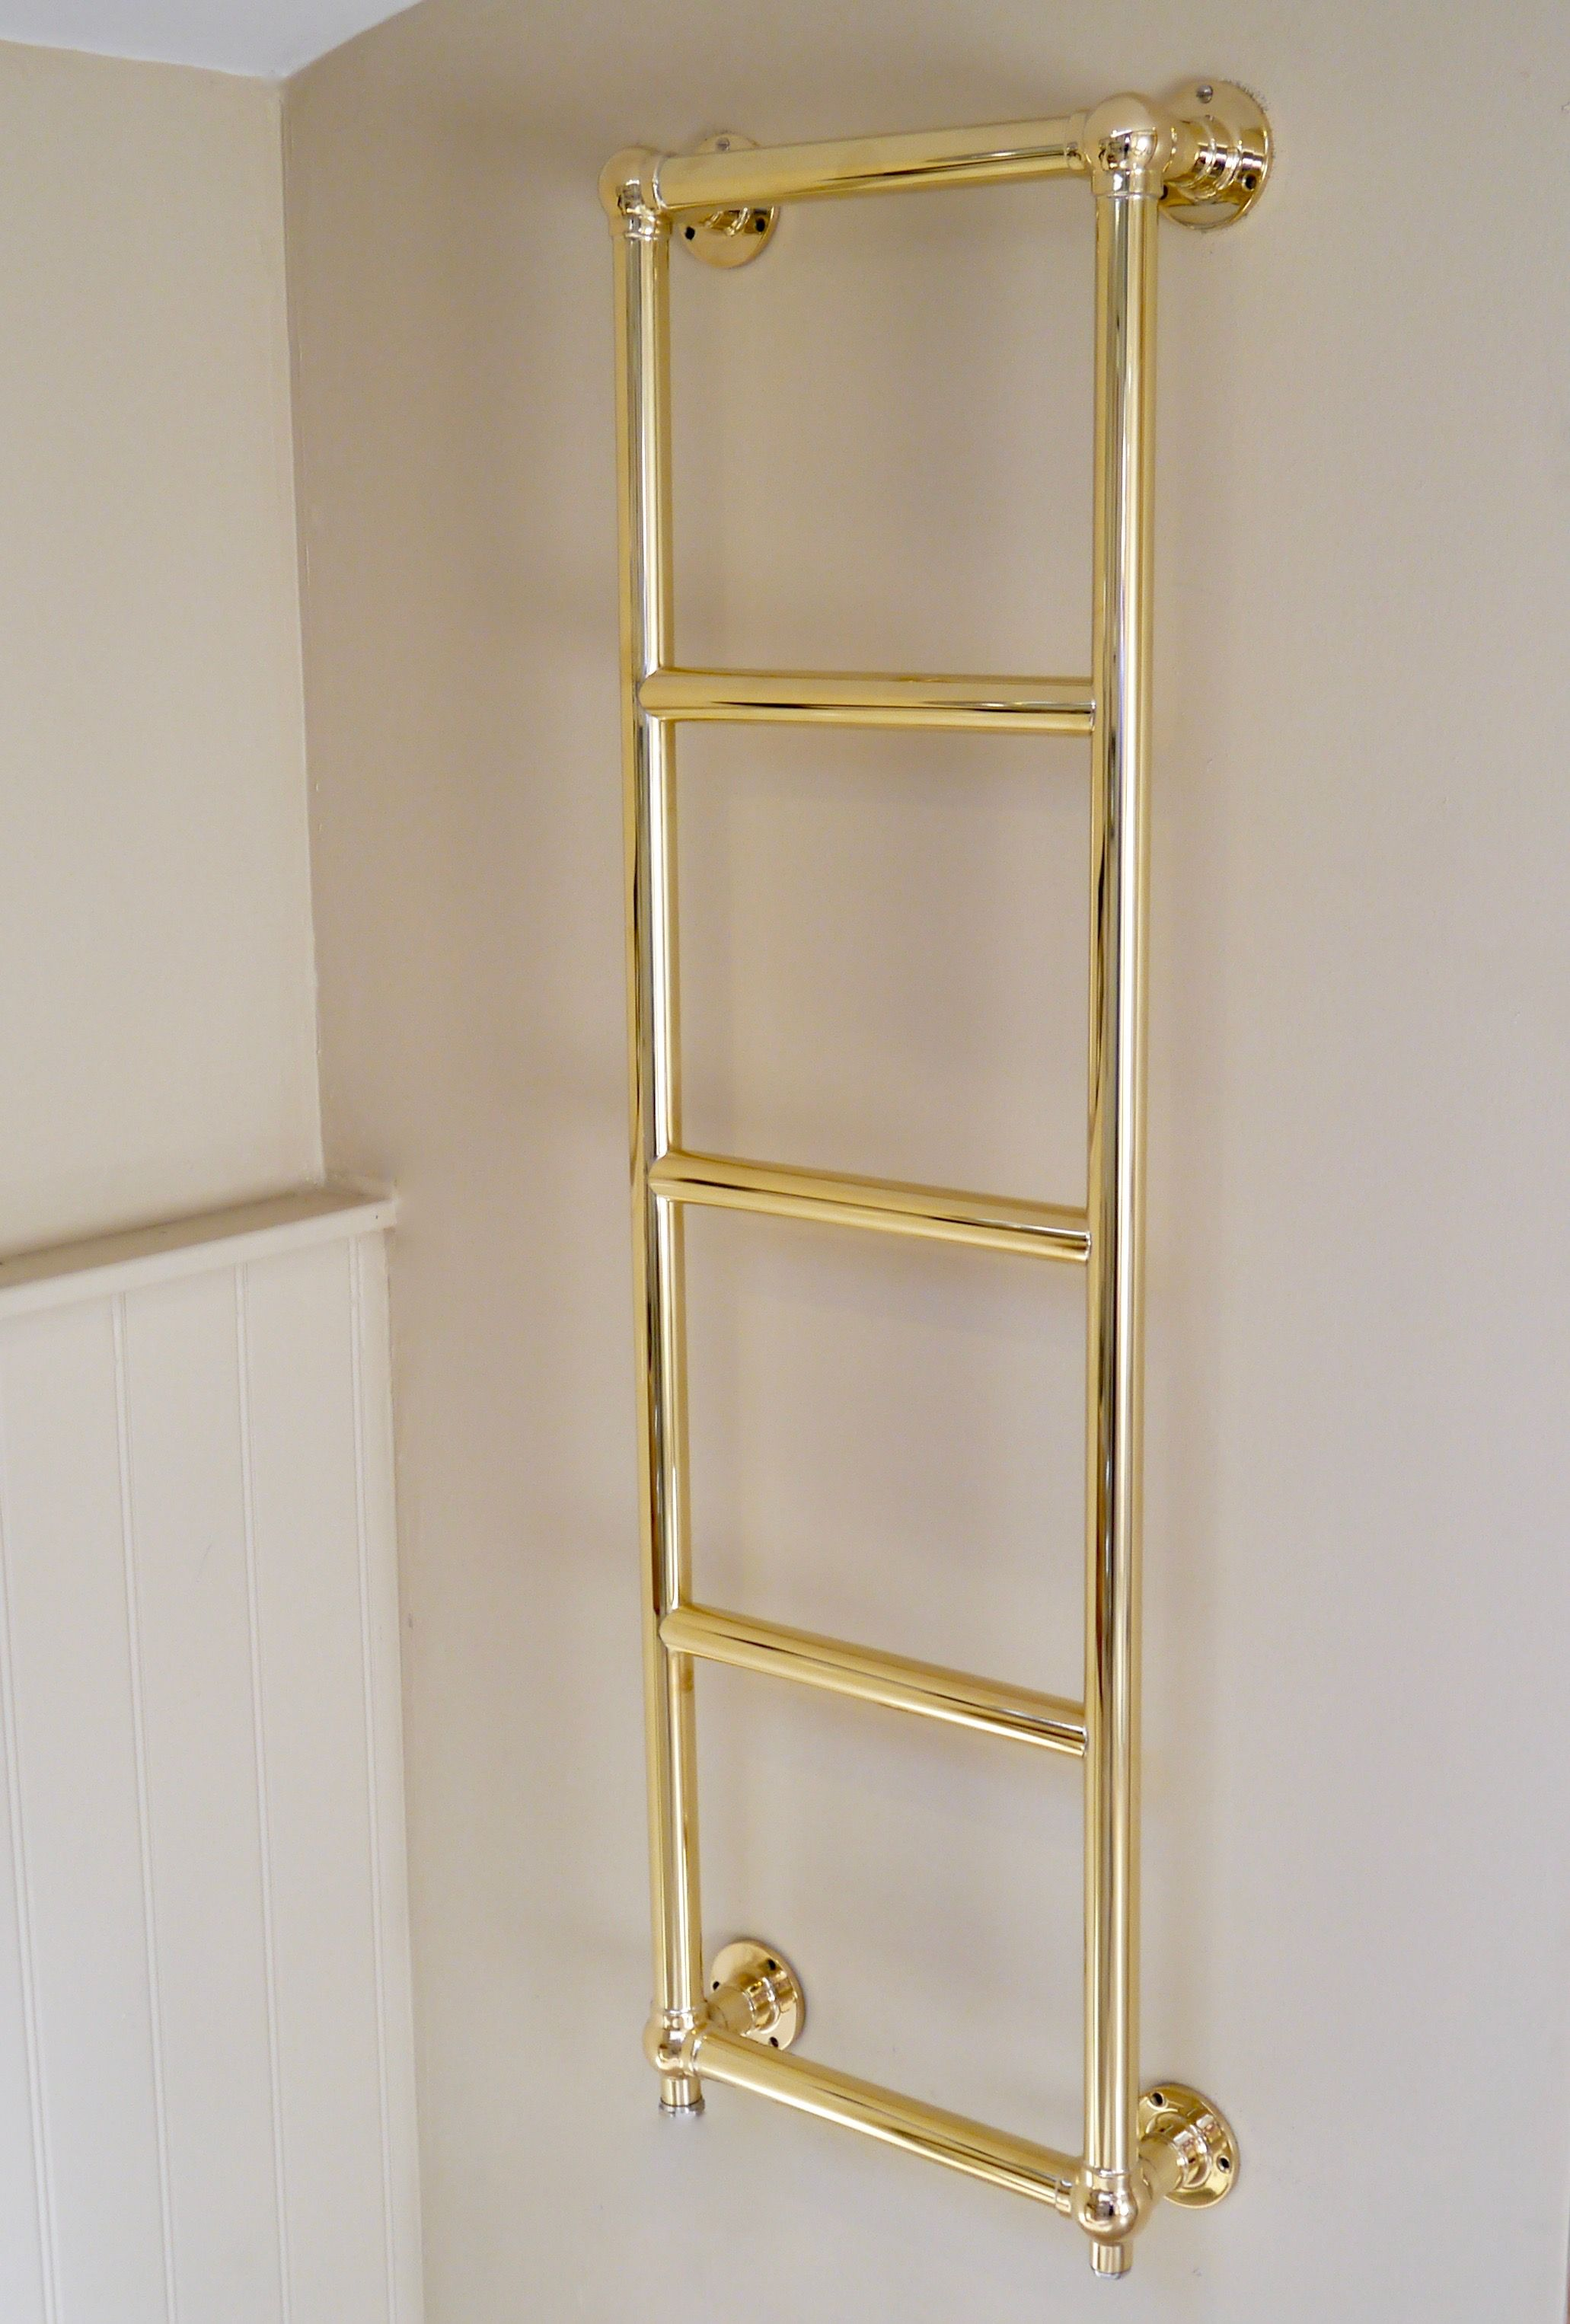 Brighton Wall Towel Rail In Hand Polished Brass Finish #Towelrail